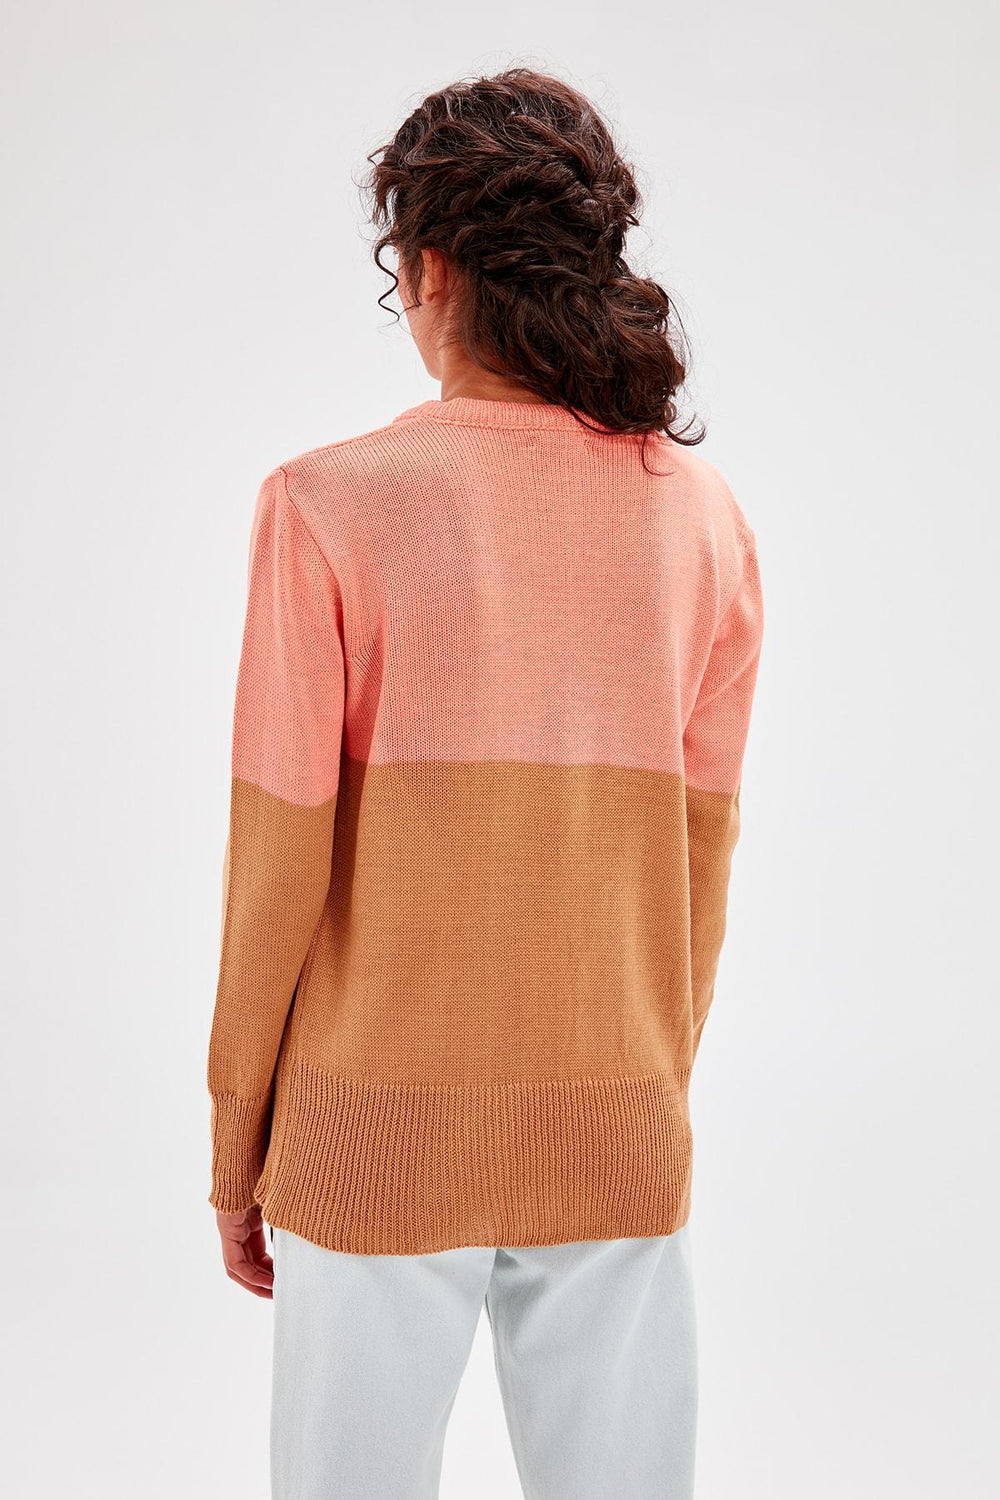 Orange Colorblock Sweater - Top Maxy